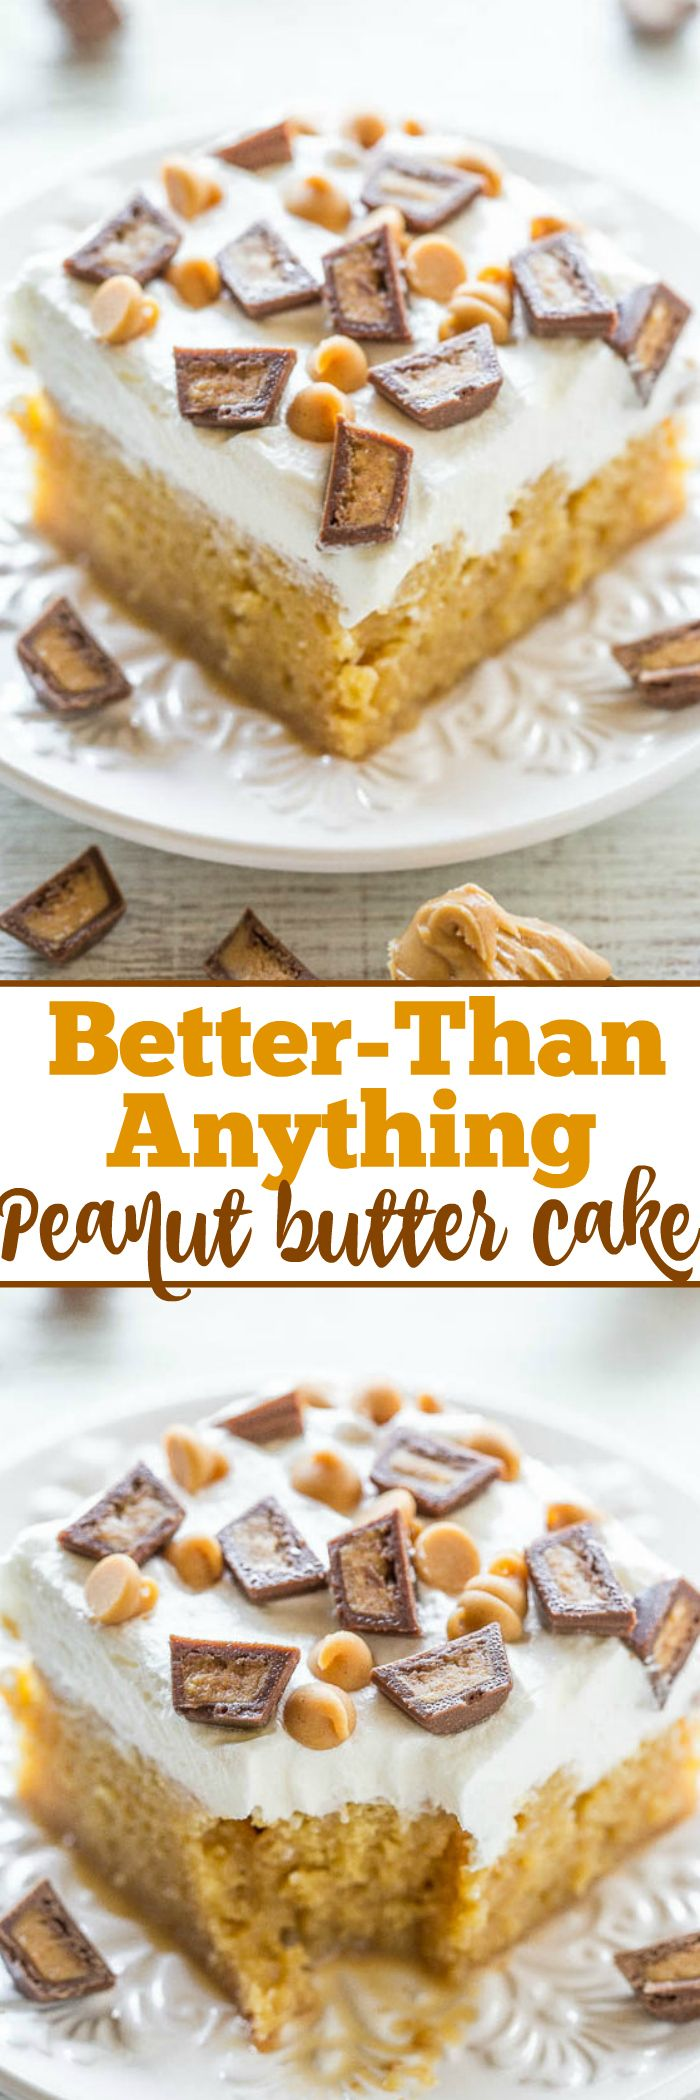 Better-Than-Anything Peanut Butter Cake - A peanut butter lovers dream: PB, PB chips, and PB cups!! An easy, no-mixer poke cake that's drenched with caramel to keep it super moist! Lives up to it's name and tastes AMAZING!! Great for parties!